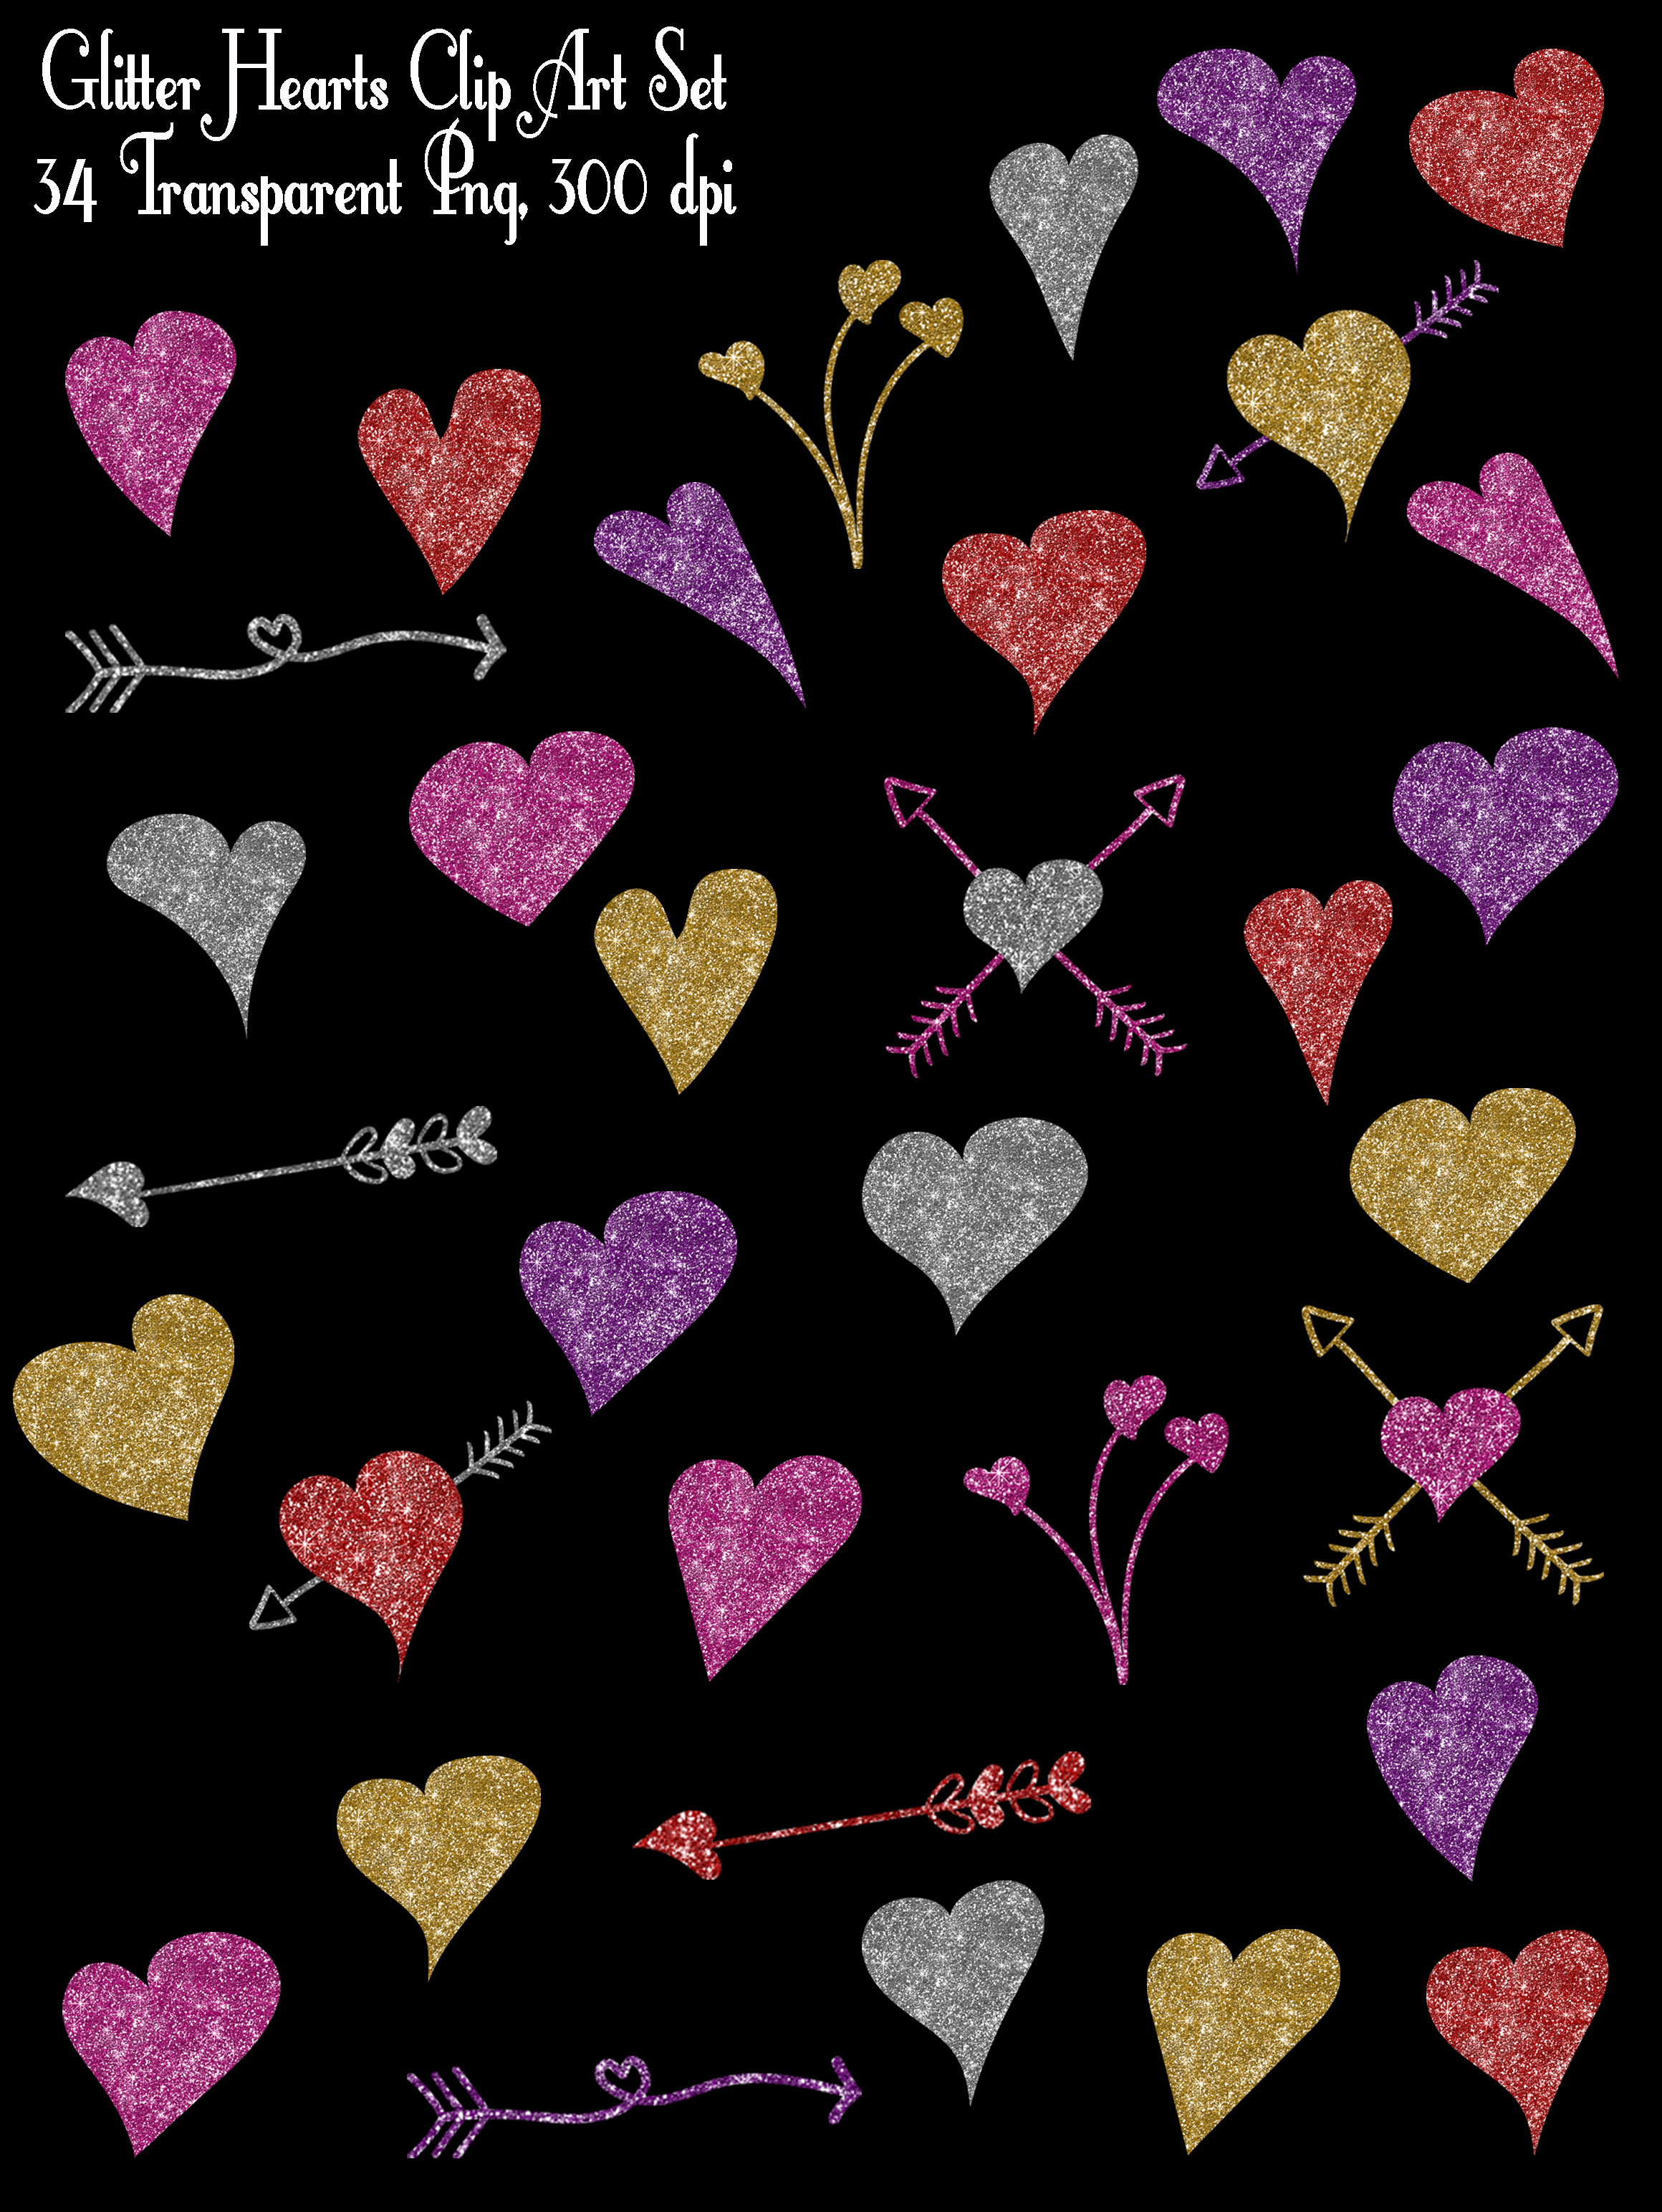 Glitter Valentine Hearts Clip Art - PNG Graphic Illustrations By oldmarketdesigns - Image 2